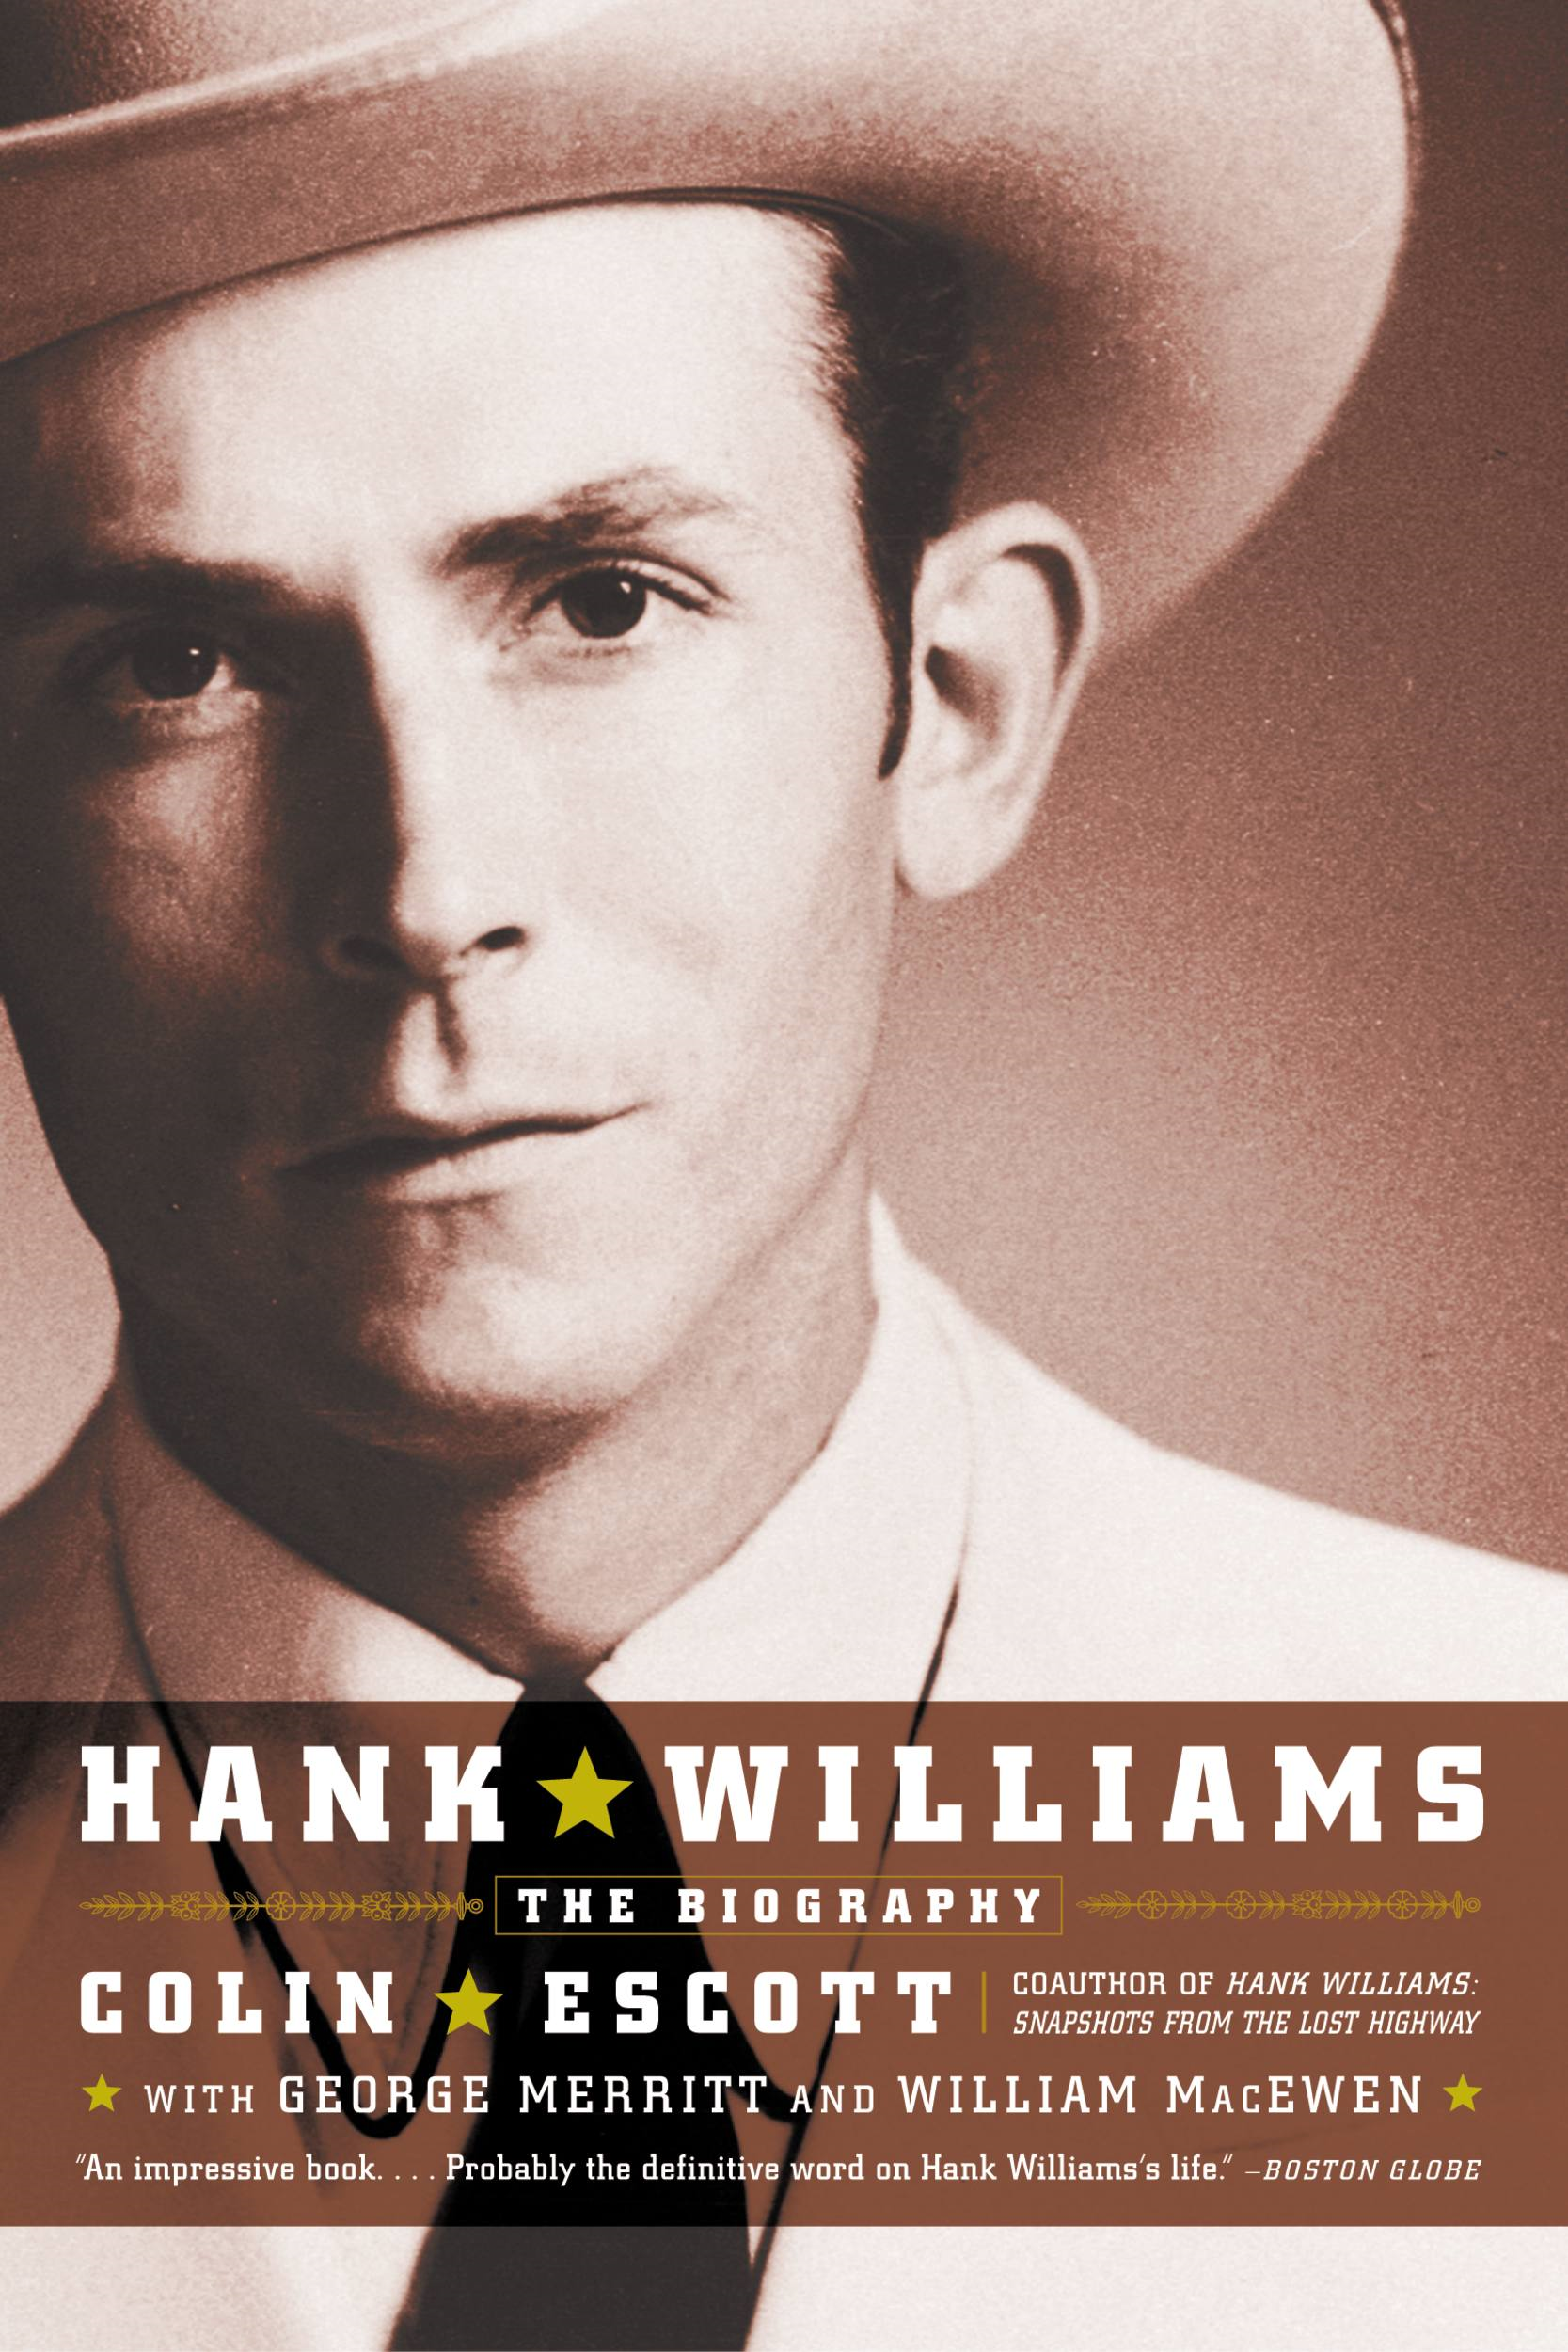 Hank Williams By: Colin Escott,George Merritt,William MacEwen